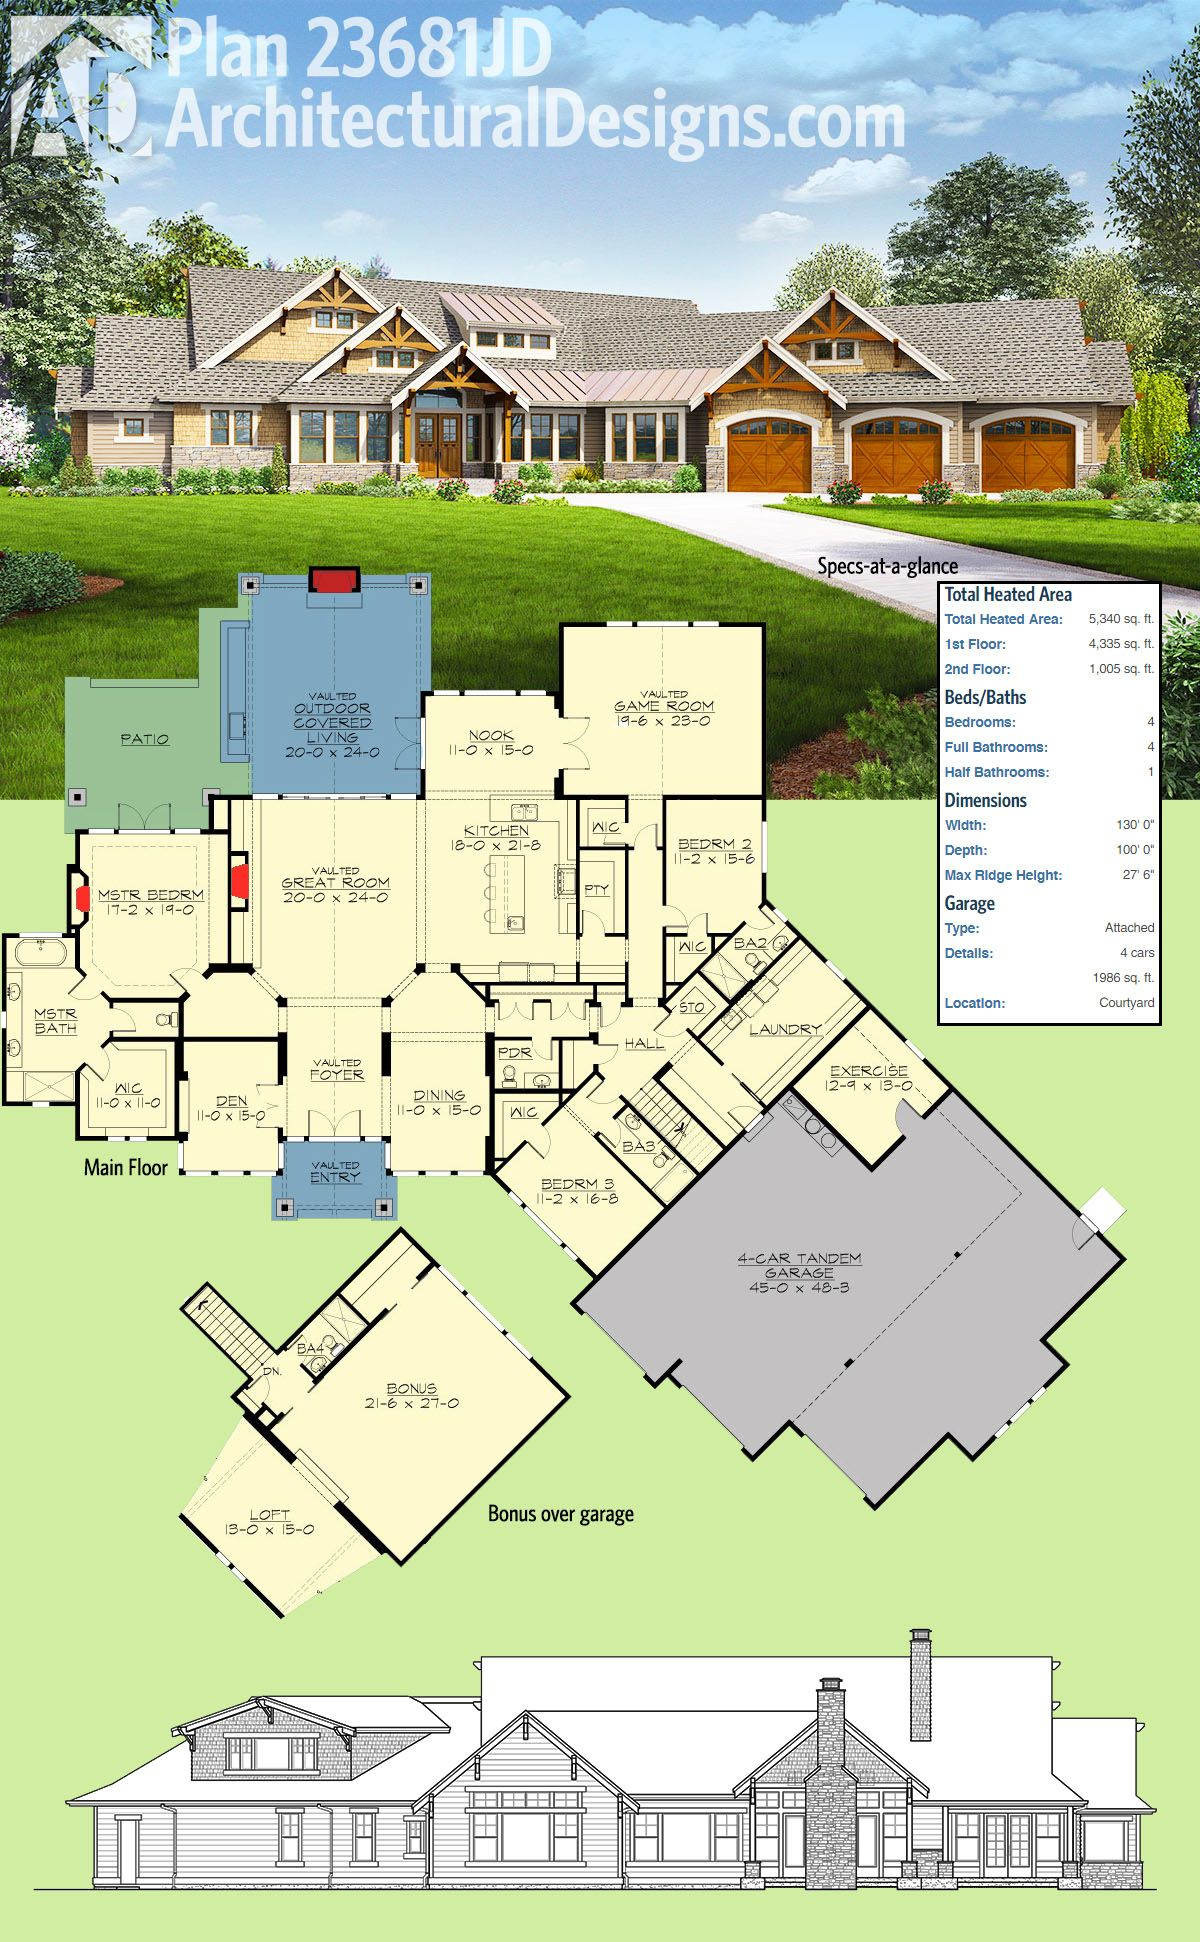 Tandem Garage House Plans Plan 23681jd 4 Bed Craftsman With Dynamic Floor Plan In 2019